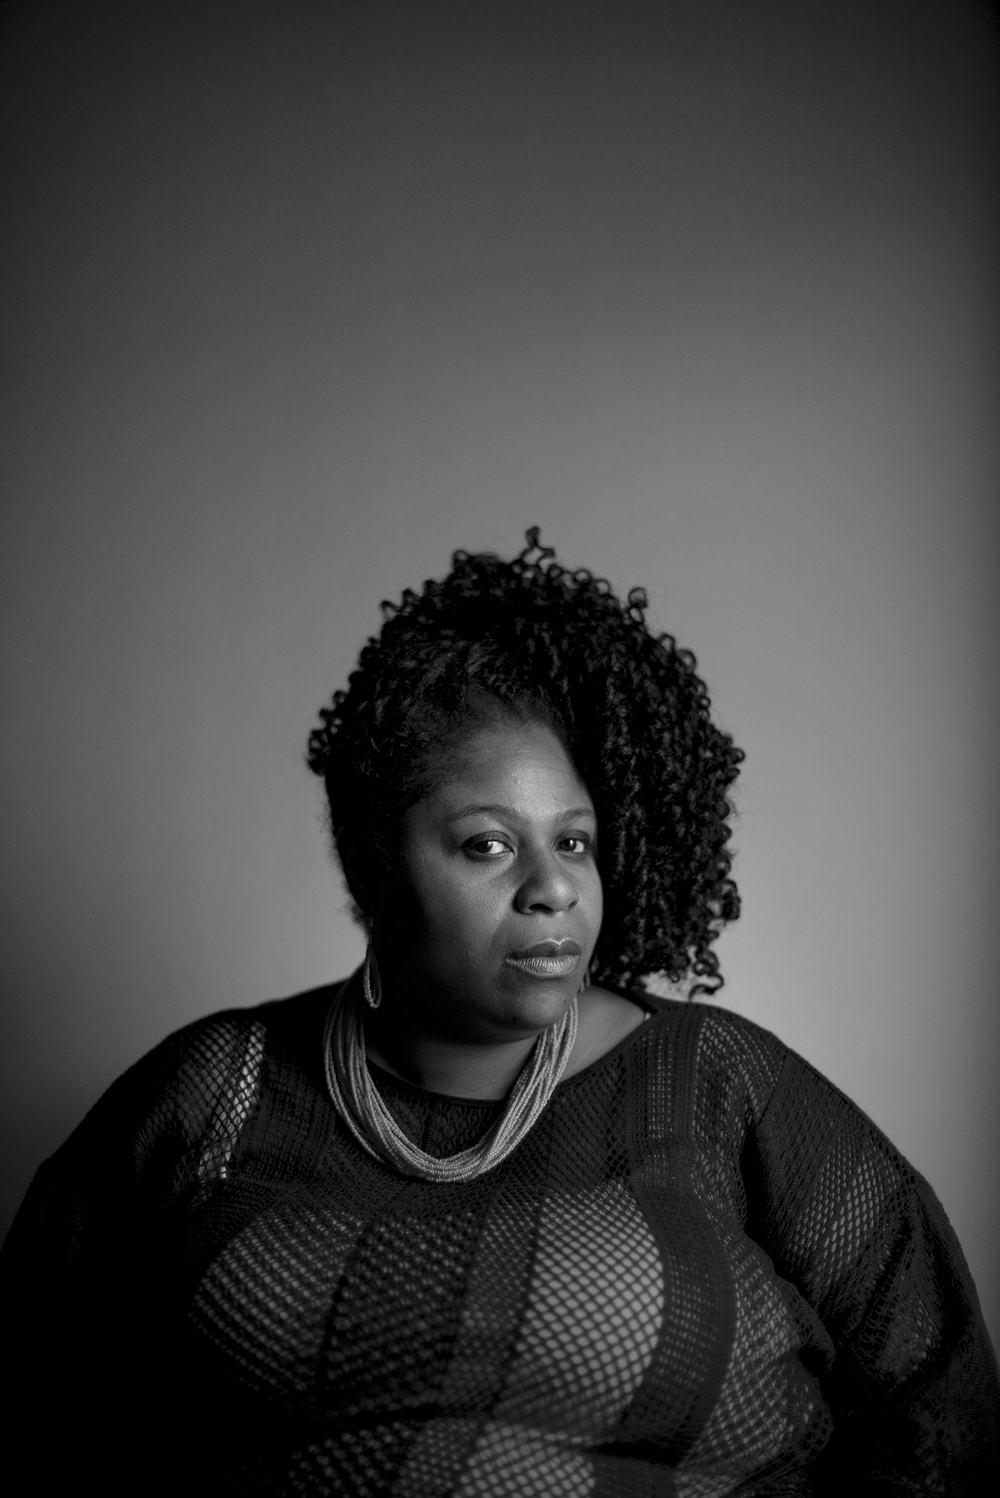 Samaria Rice, Cleveland, Ohio.